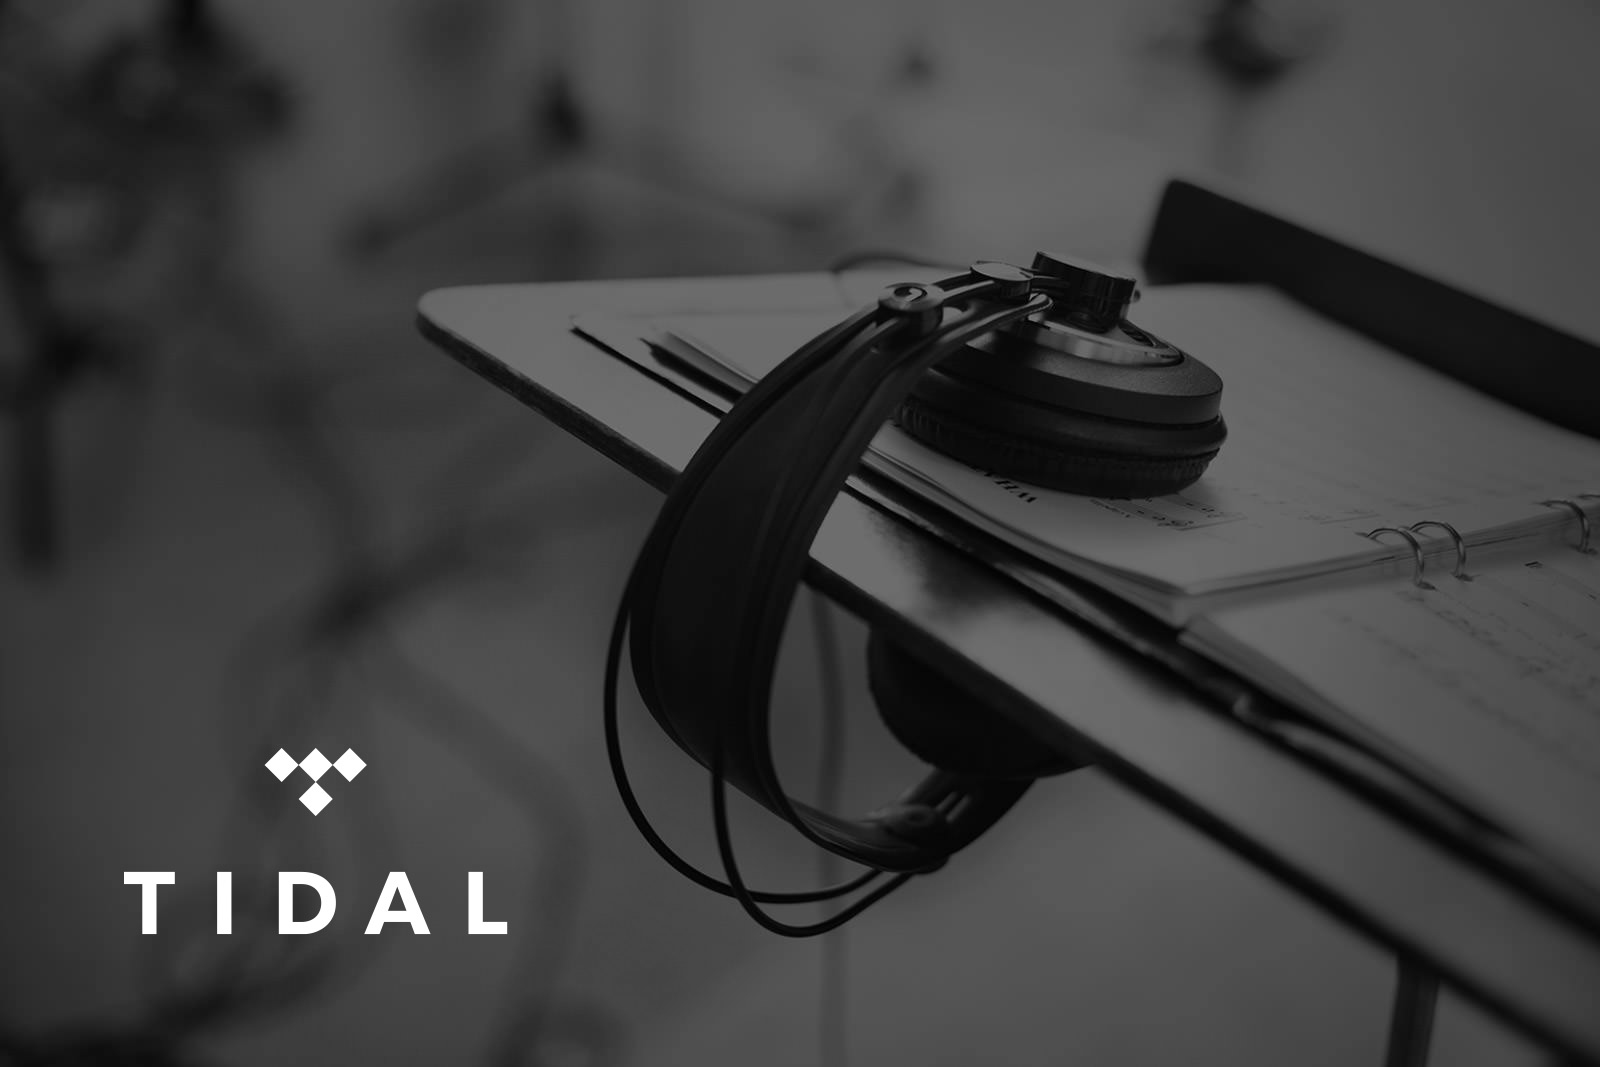 Tidal makes some big changes before Apple Music's debut